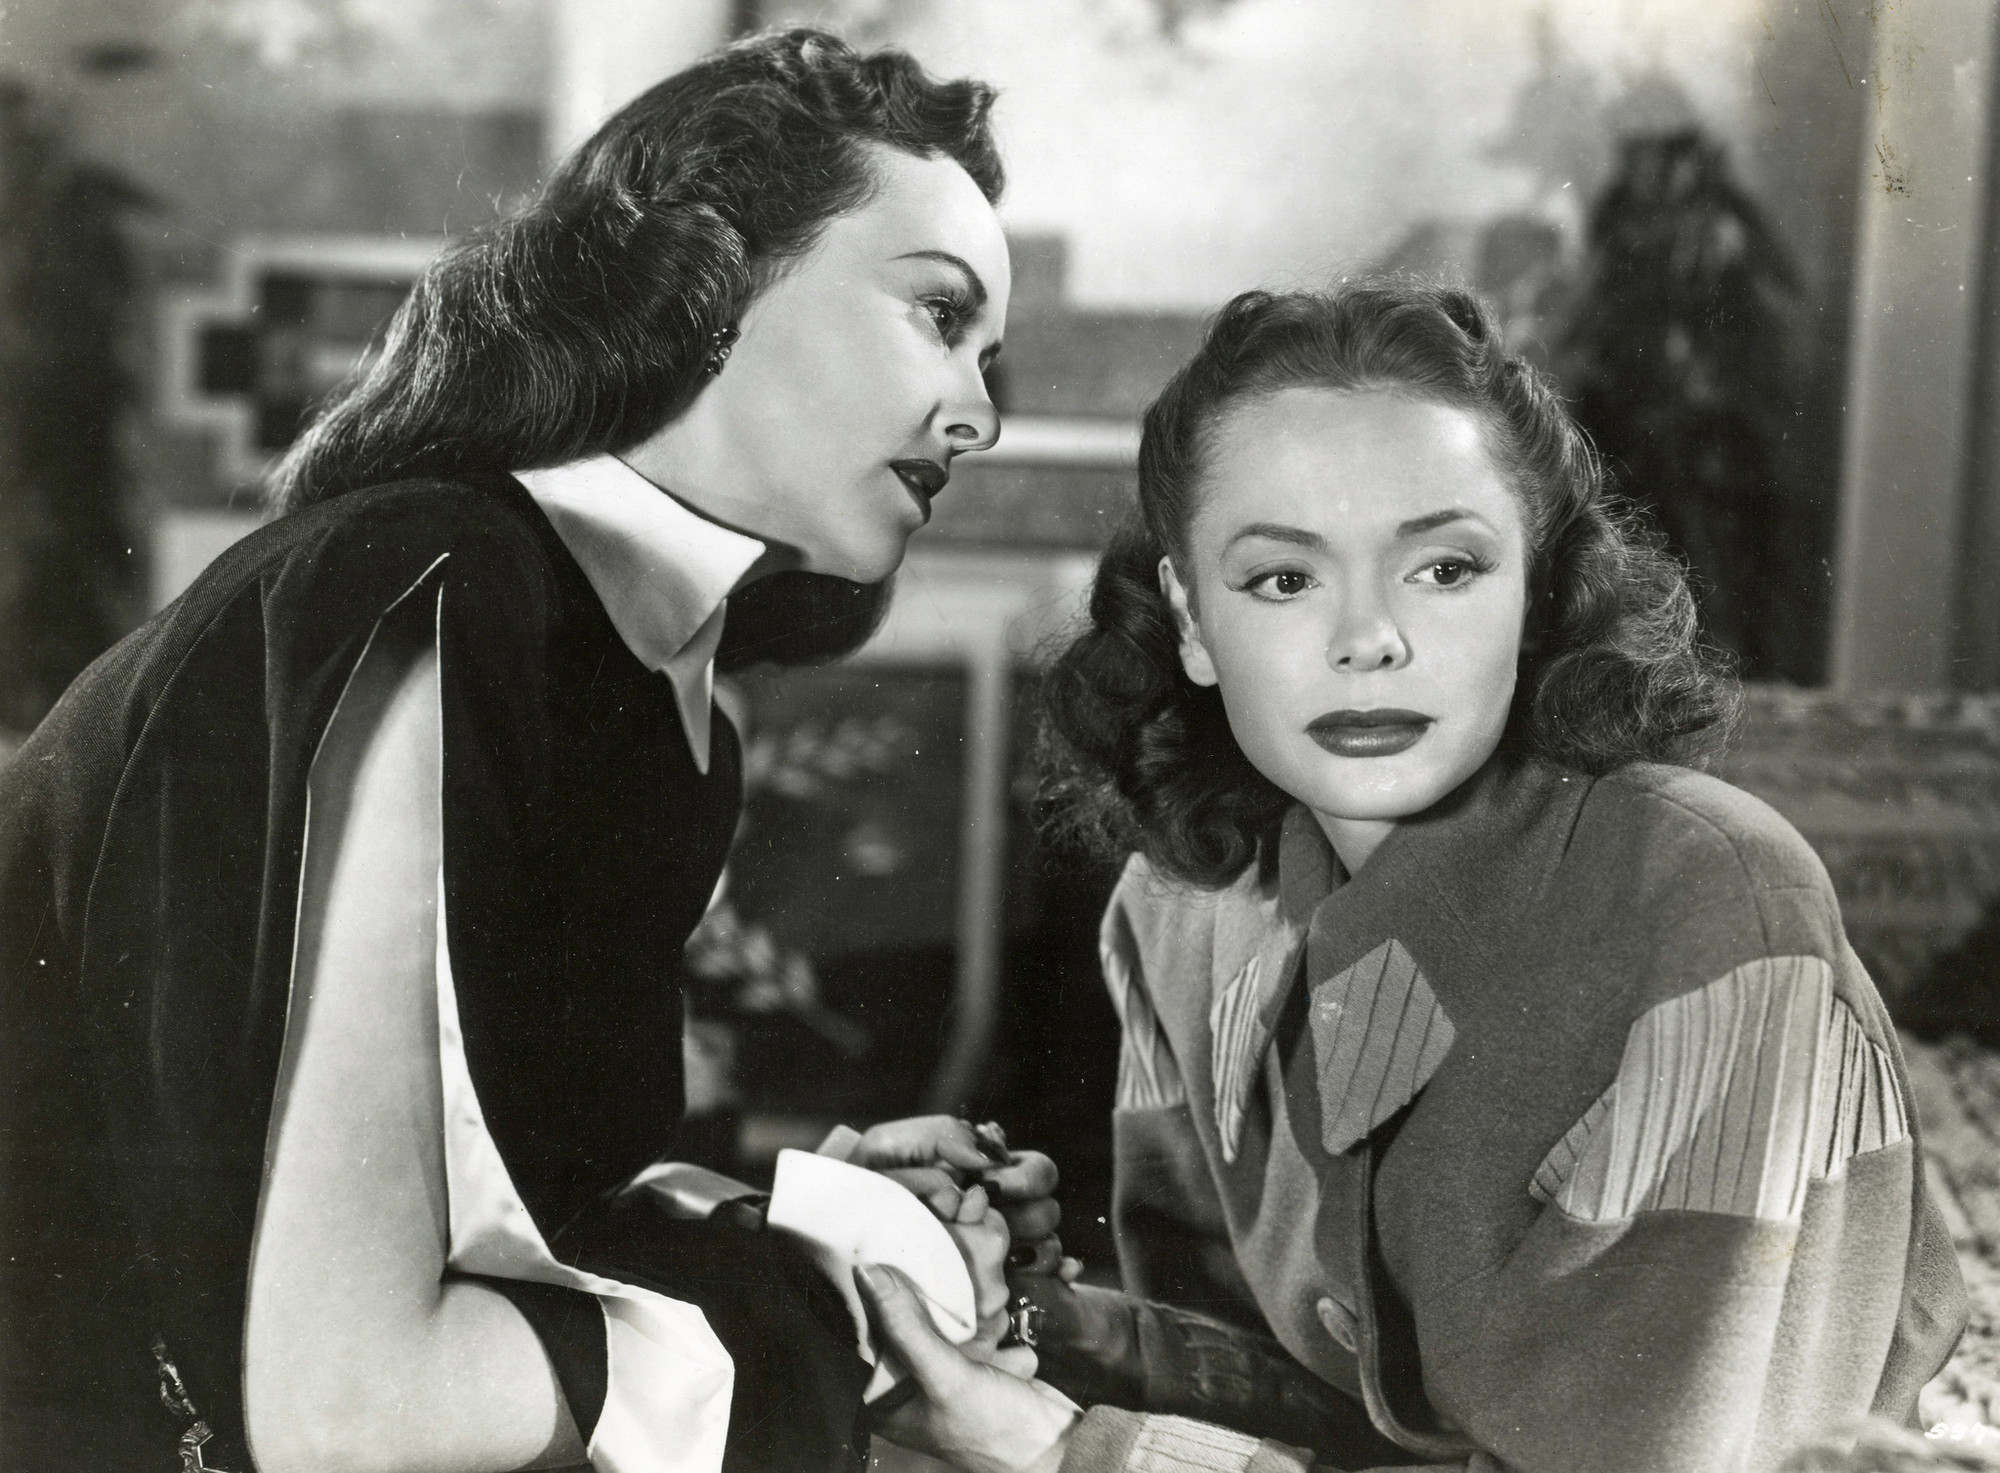 Her Sister's Secret. 1946. USA. Directed by Edgar G. Ulmer. Courtesy The Museum of Modern Art Film Stills Archive